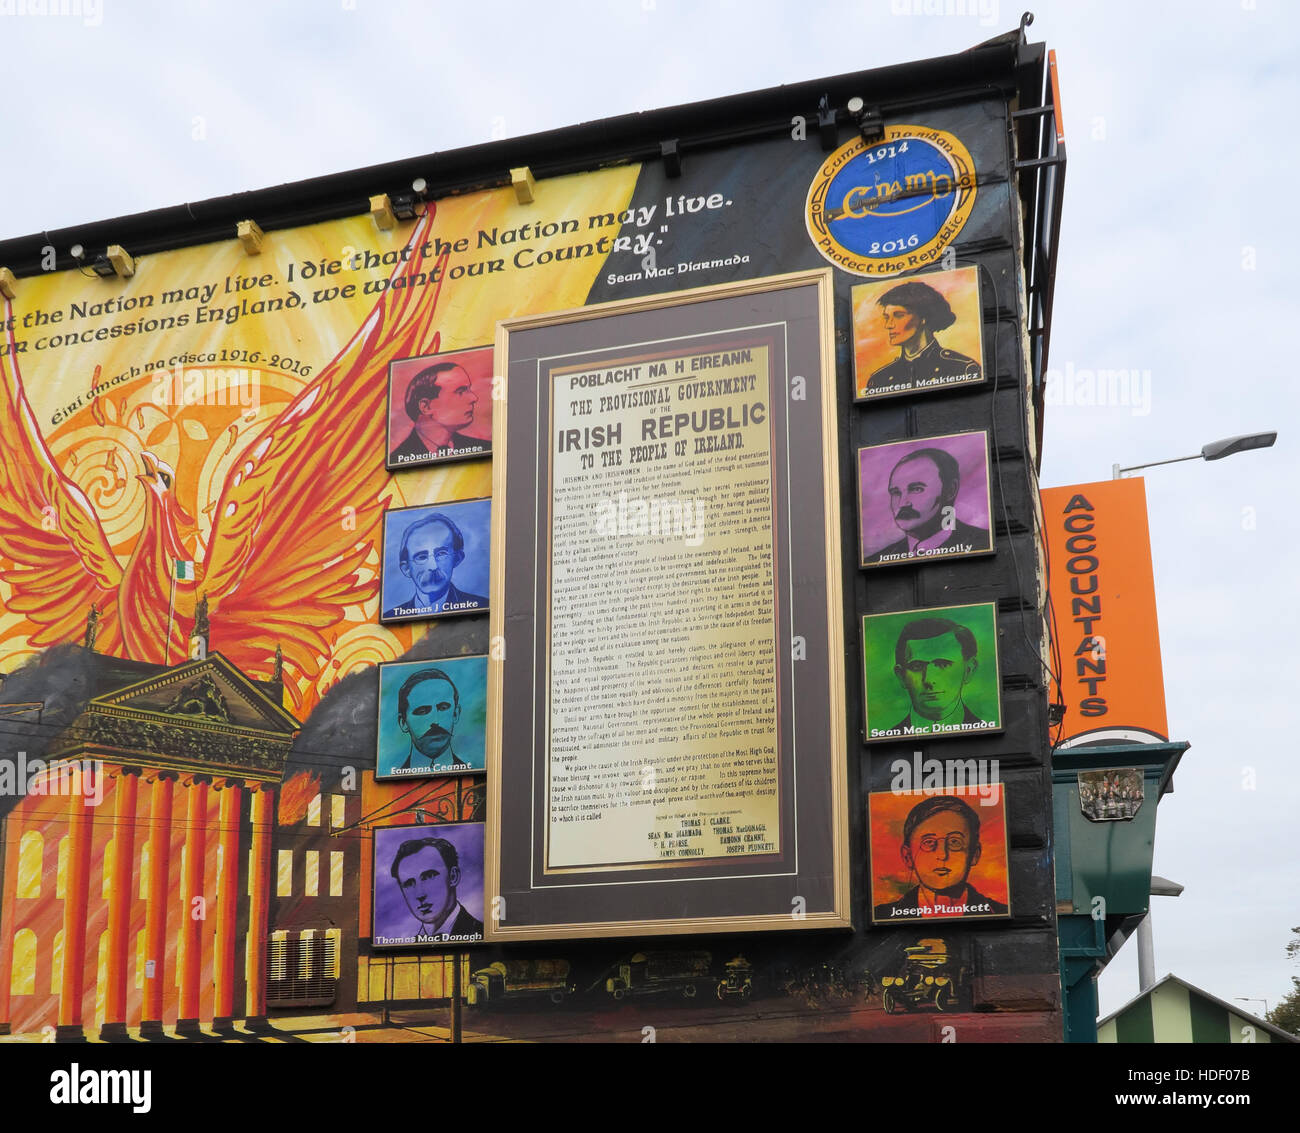 Belfast Falls Rd Republican Mural 1798 Eire, United Irishmen Rebellion - Stock Image